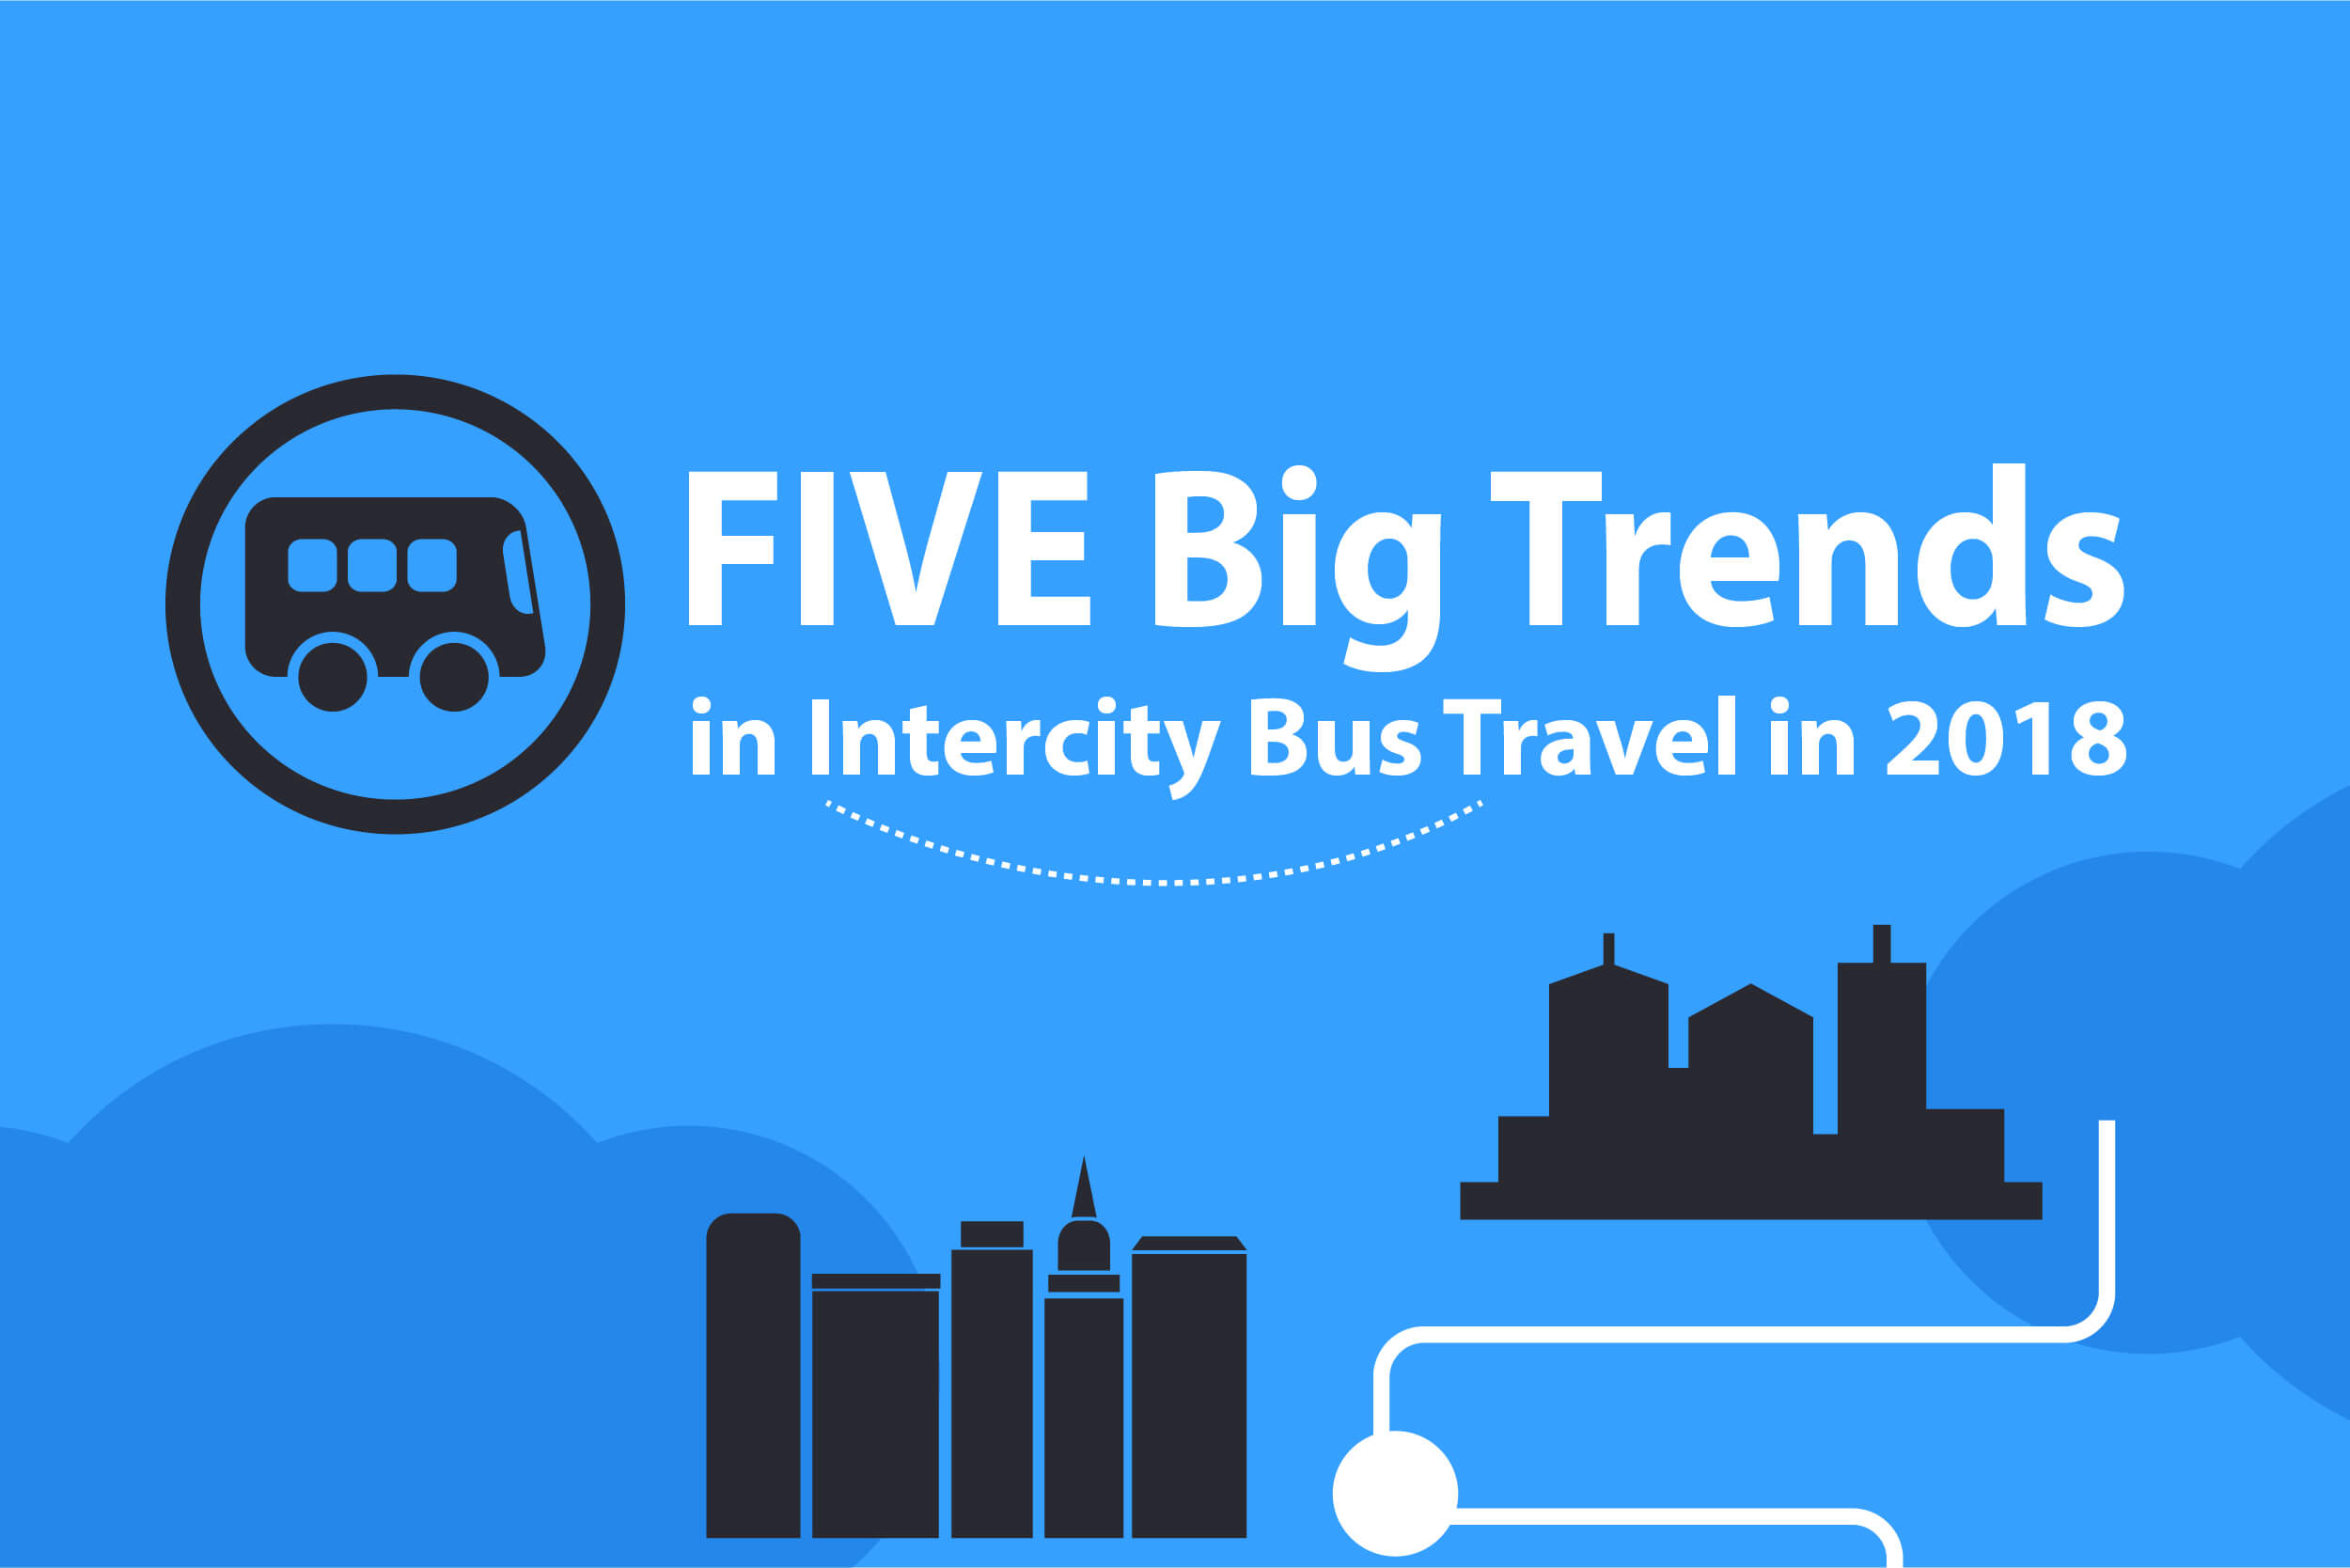 US intercity bus travel trend in 2018